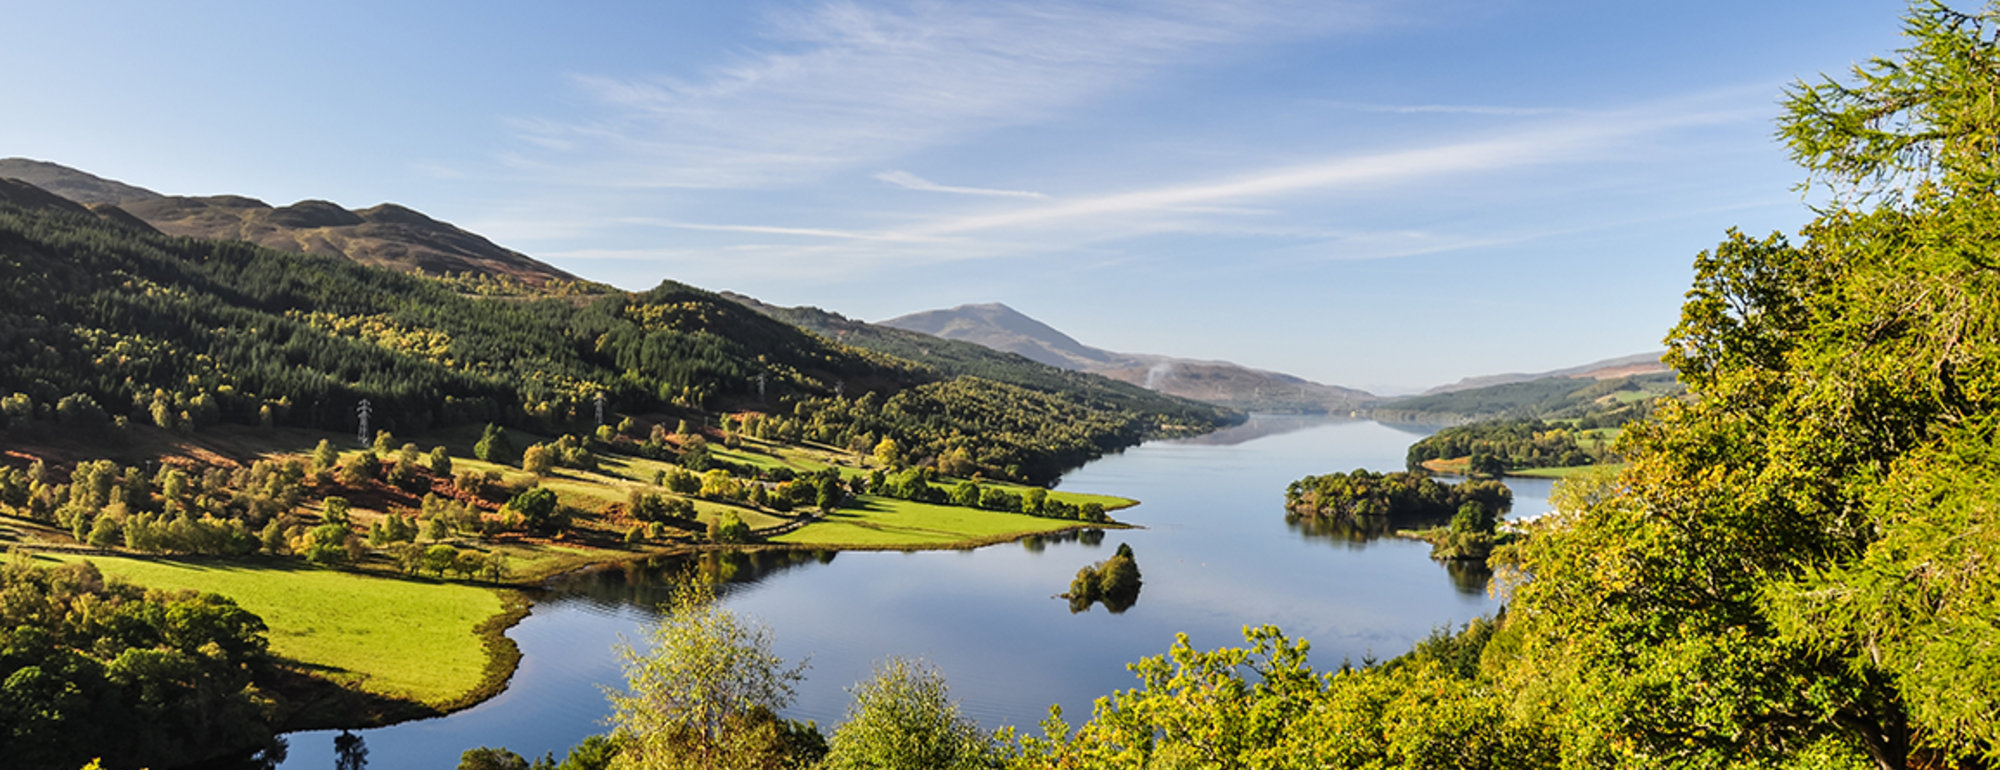 Loch Tummel - Queen's View